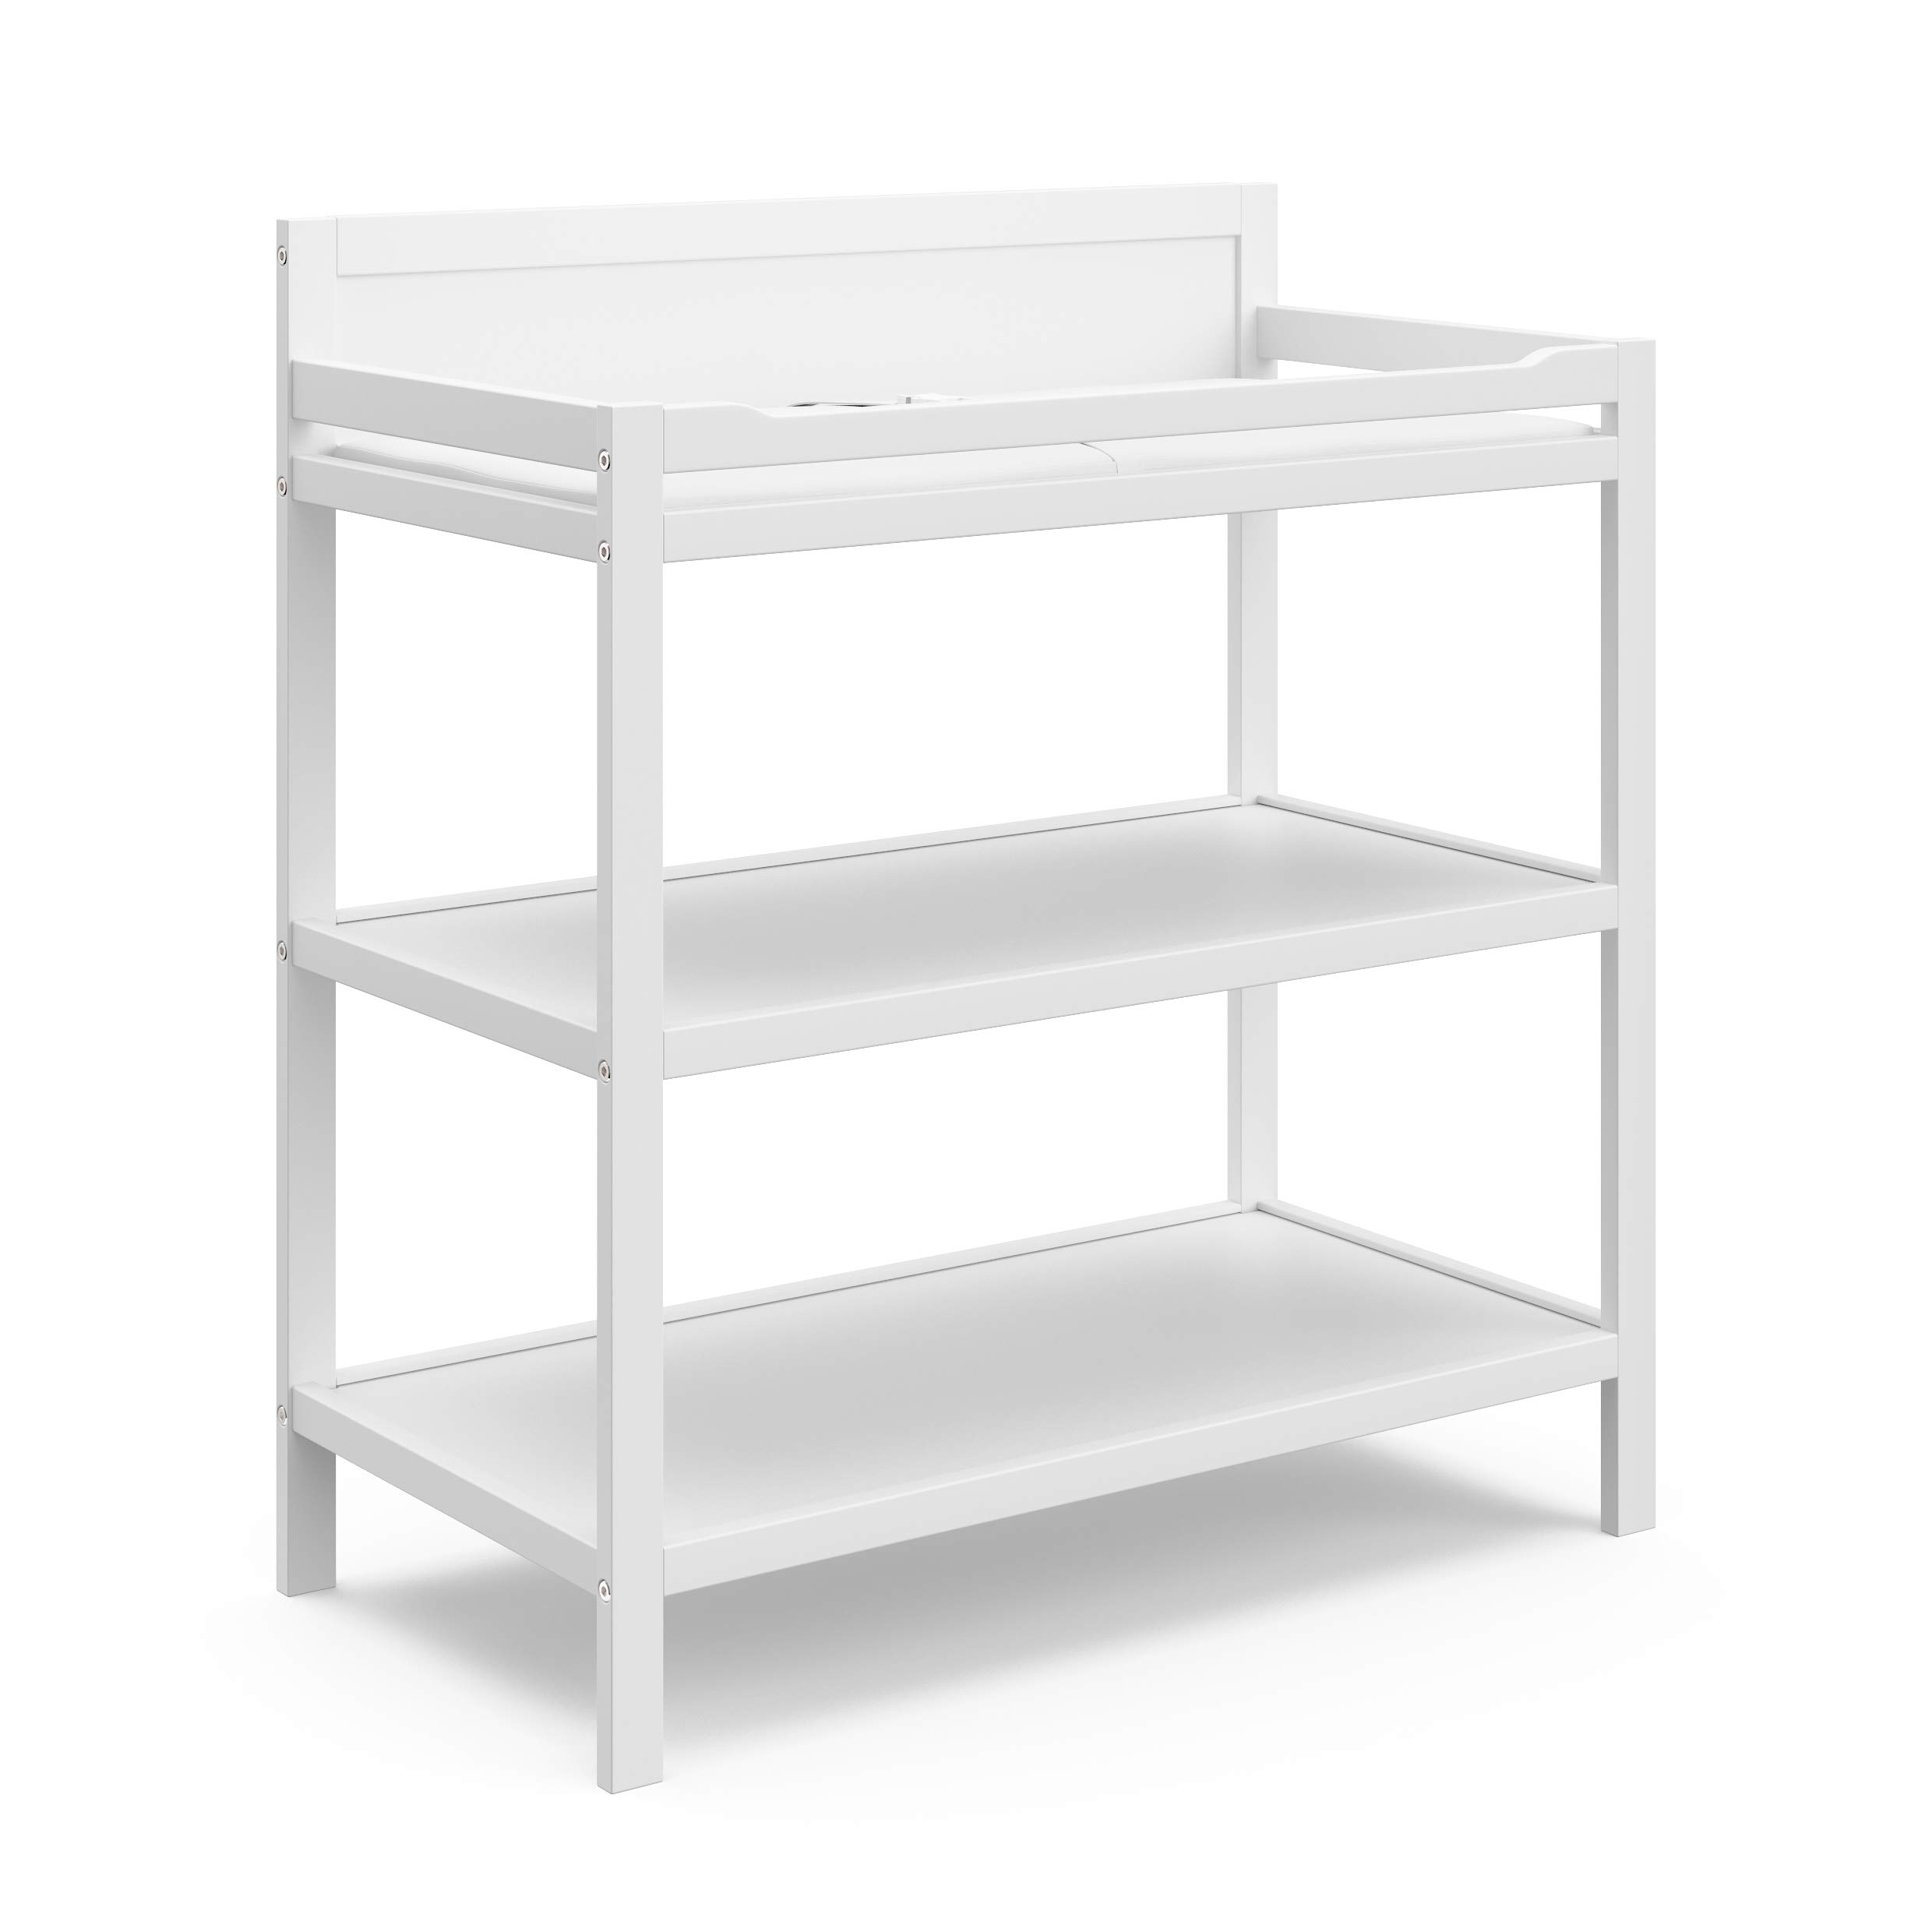 StorkCraft Storkcraft Alpine Changing Table with Water-Resistant Change Pad and Safety Strap, White, Multi Storage Nursery Changing Table for Infants or Babies, White, 00524-221 by Storkcraft